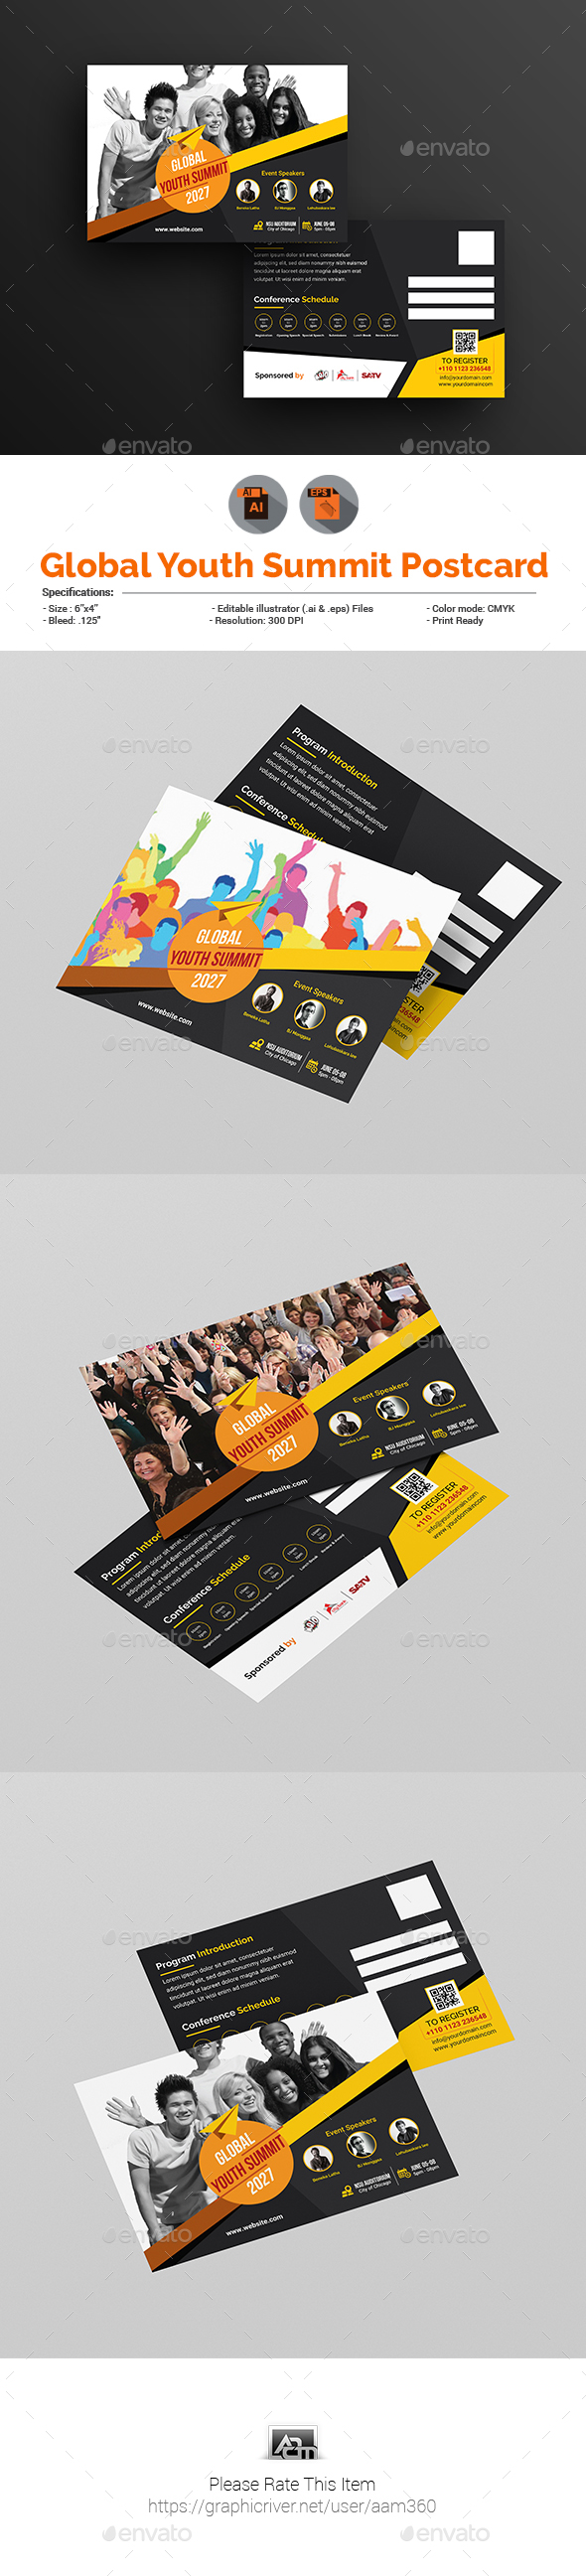 Global Youth Summit Postcard Template - Cards & Invites Print Templates